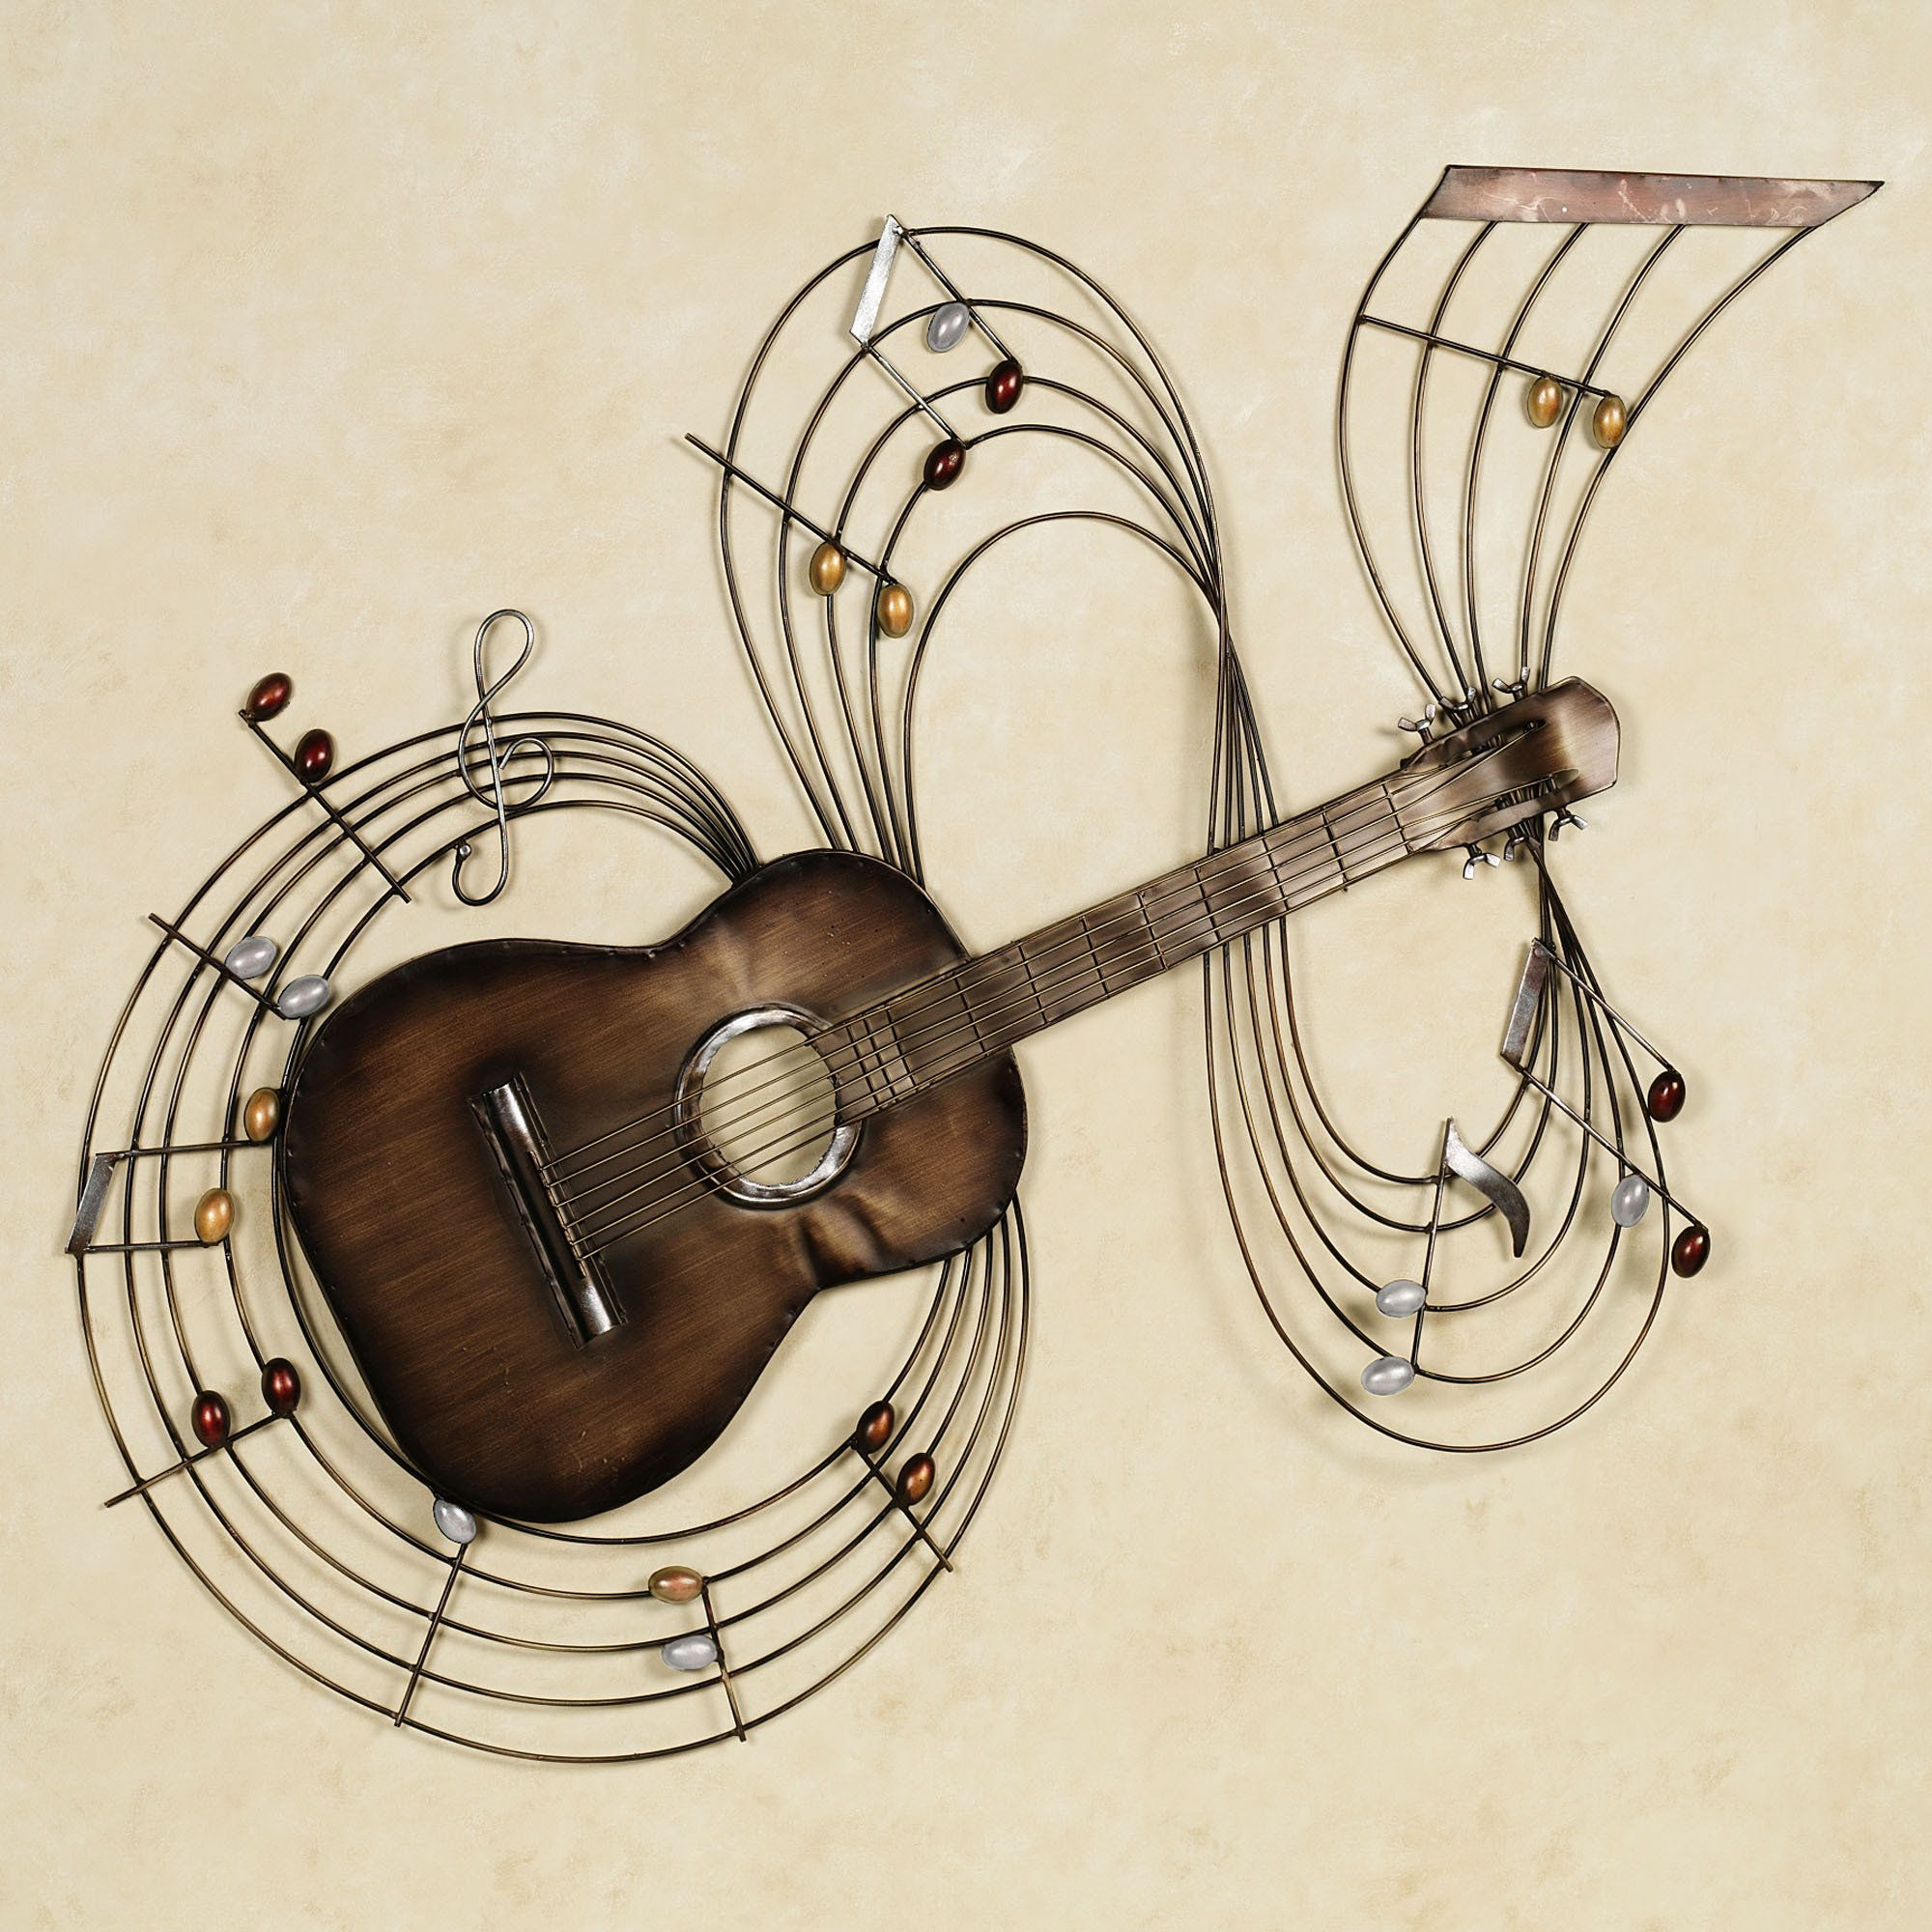 Music Metal Wall Art within the music guitar metal wall art | music wall art, music